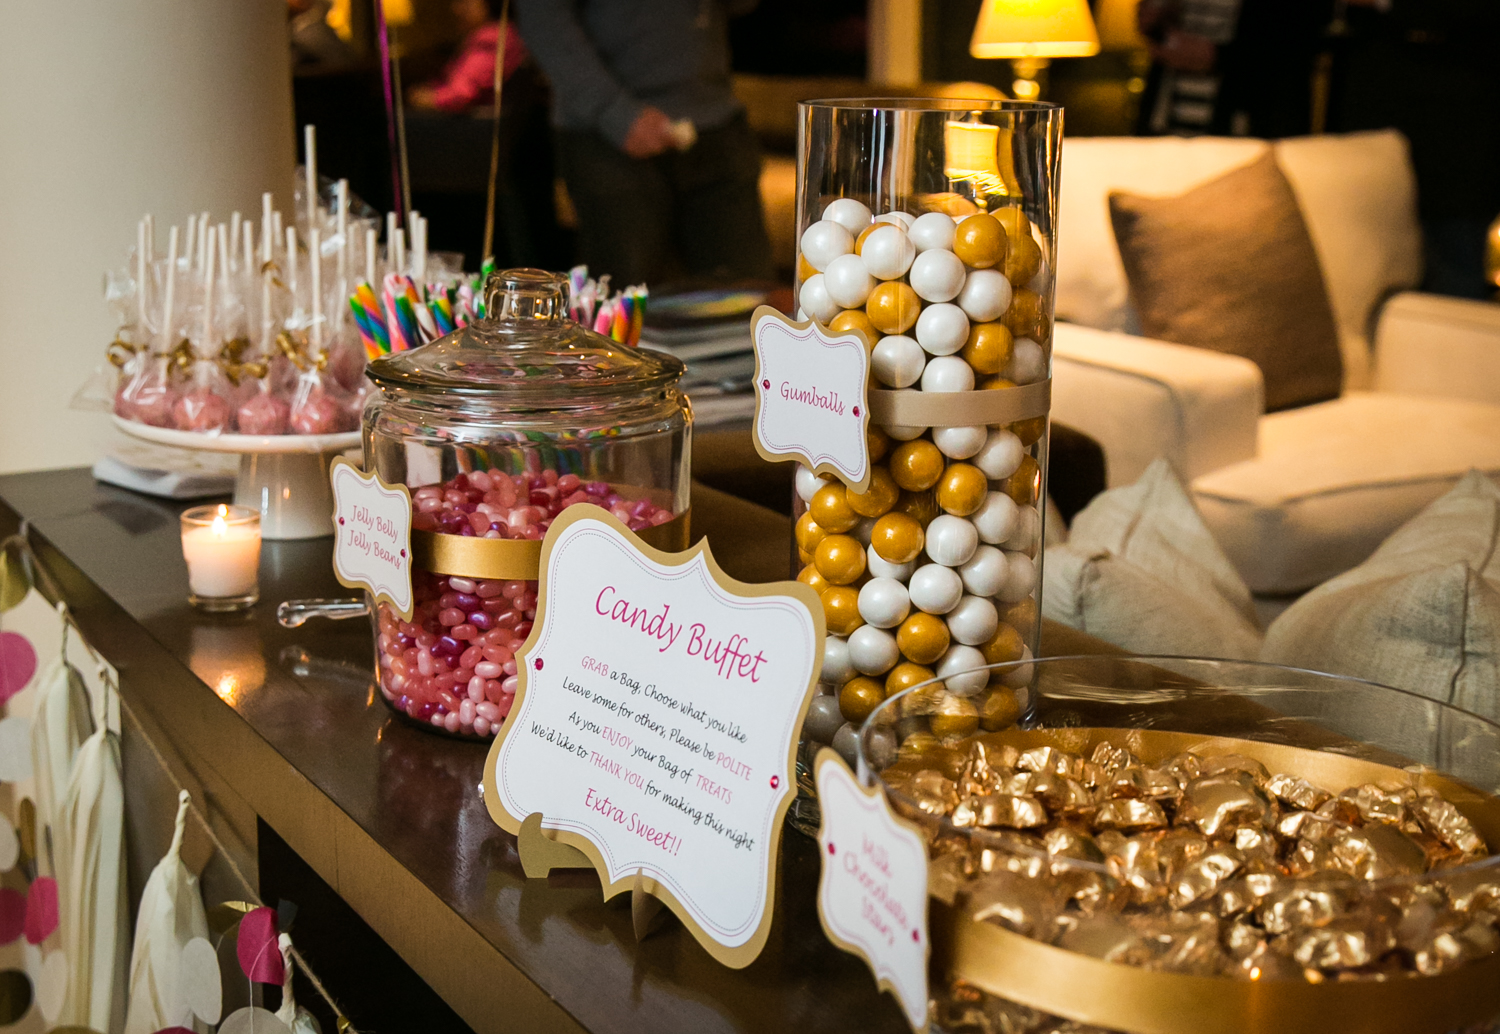 Candy buffet with gold-wrapped candies